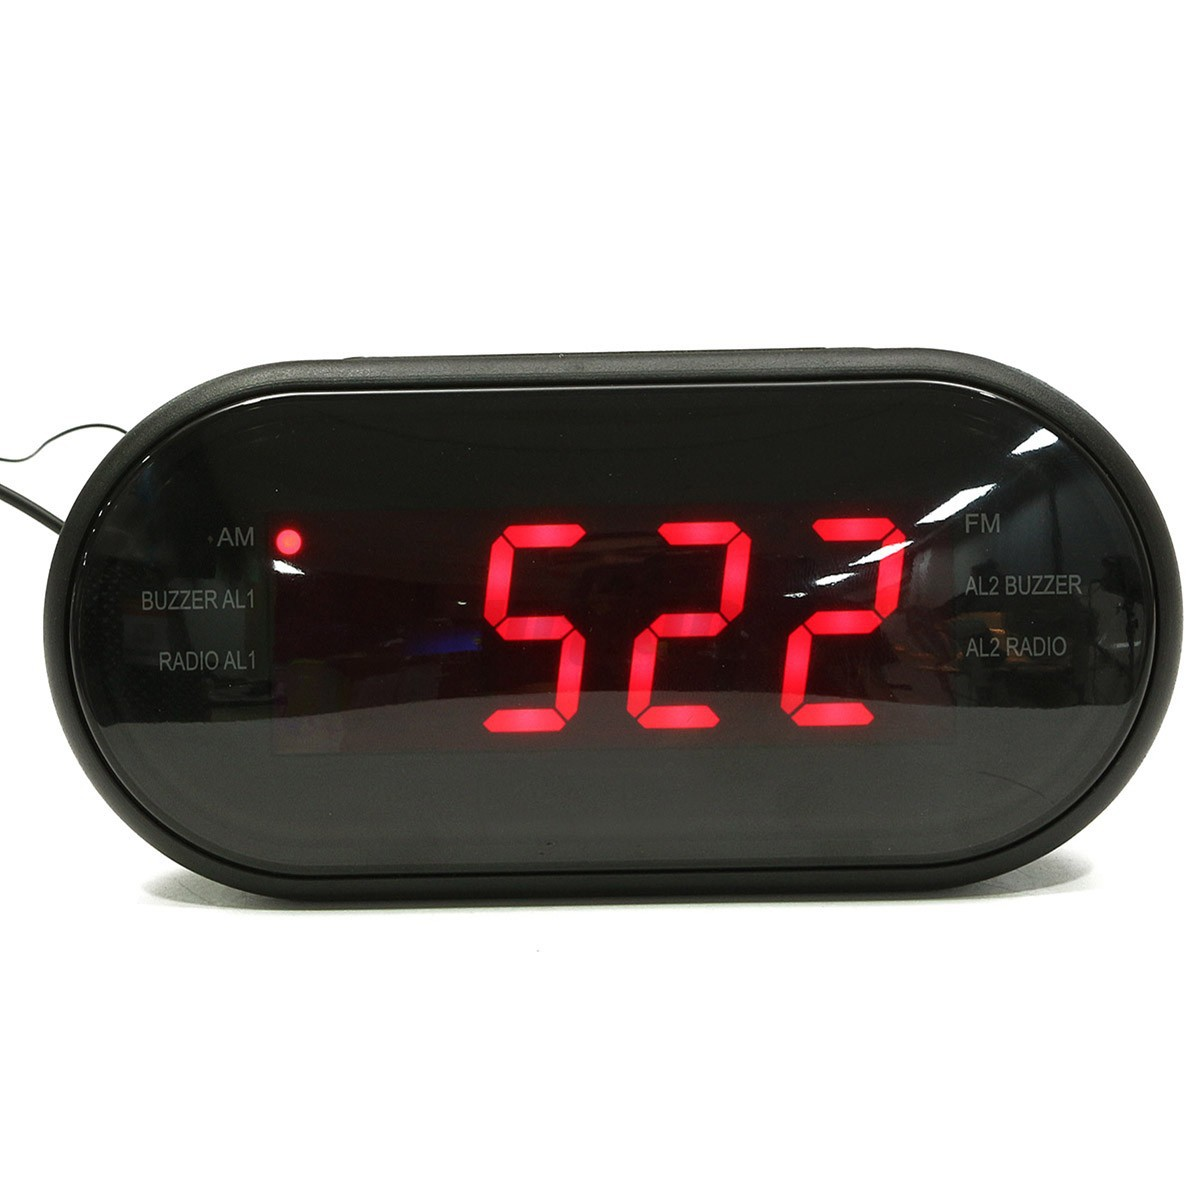 led display digital am fm radio alarm clock buzzer snooze function ebay. Black Bedroom Furniture Sets. Home Design Ideas